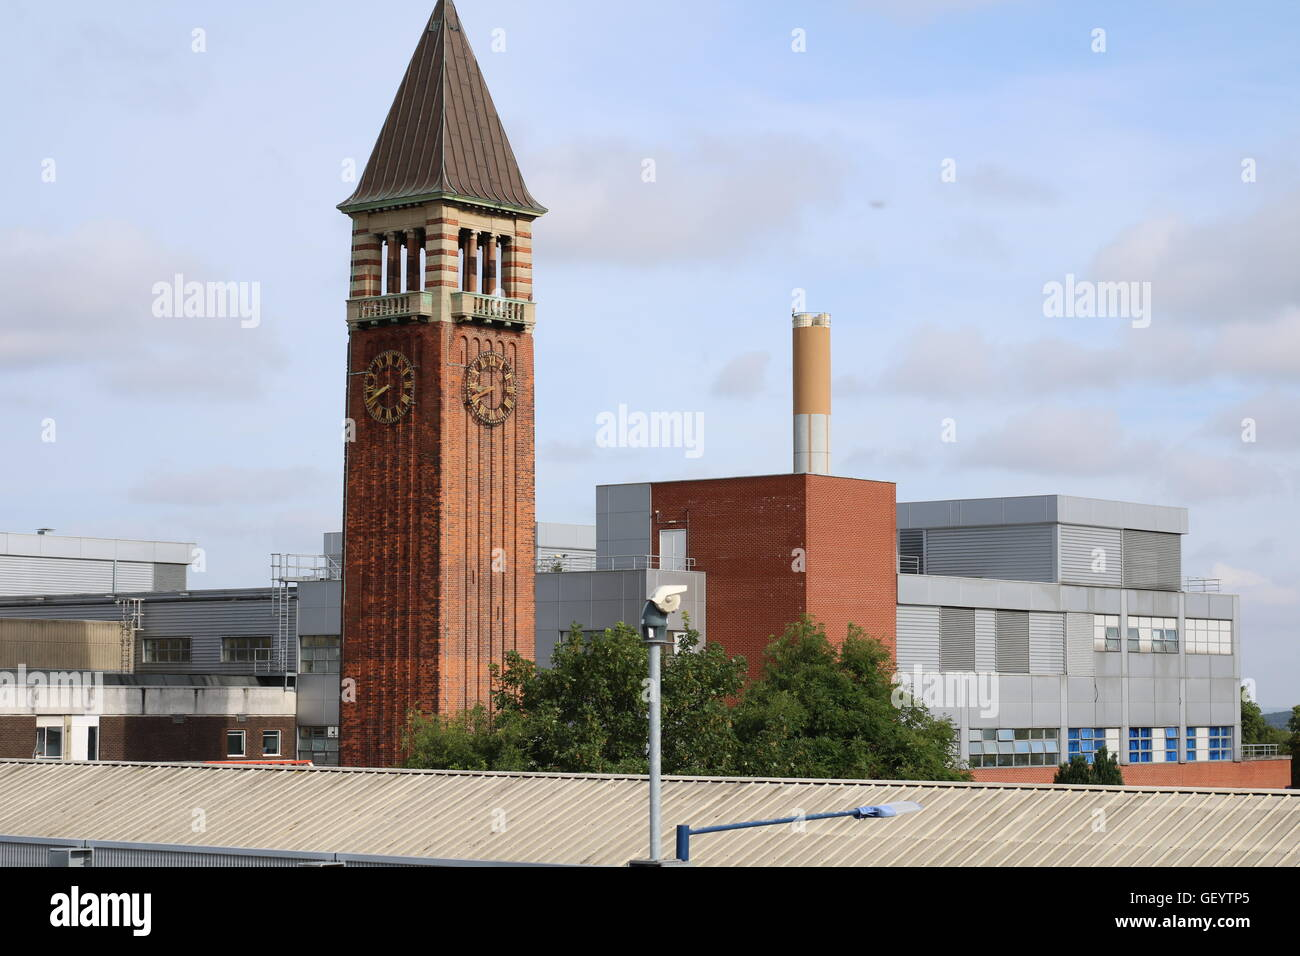 medway maritime hospital clock tower stock photo  royalty download free vector art graphics download free vector graphics